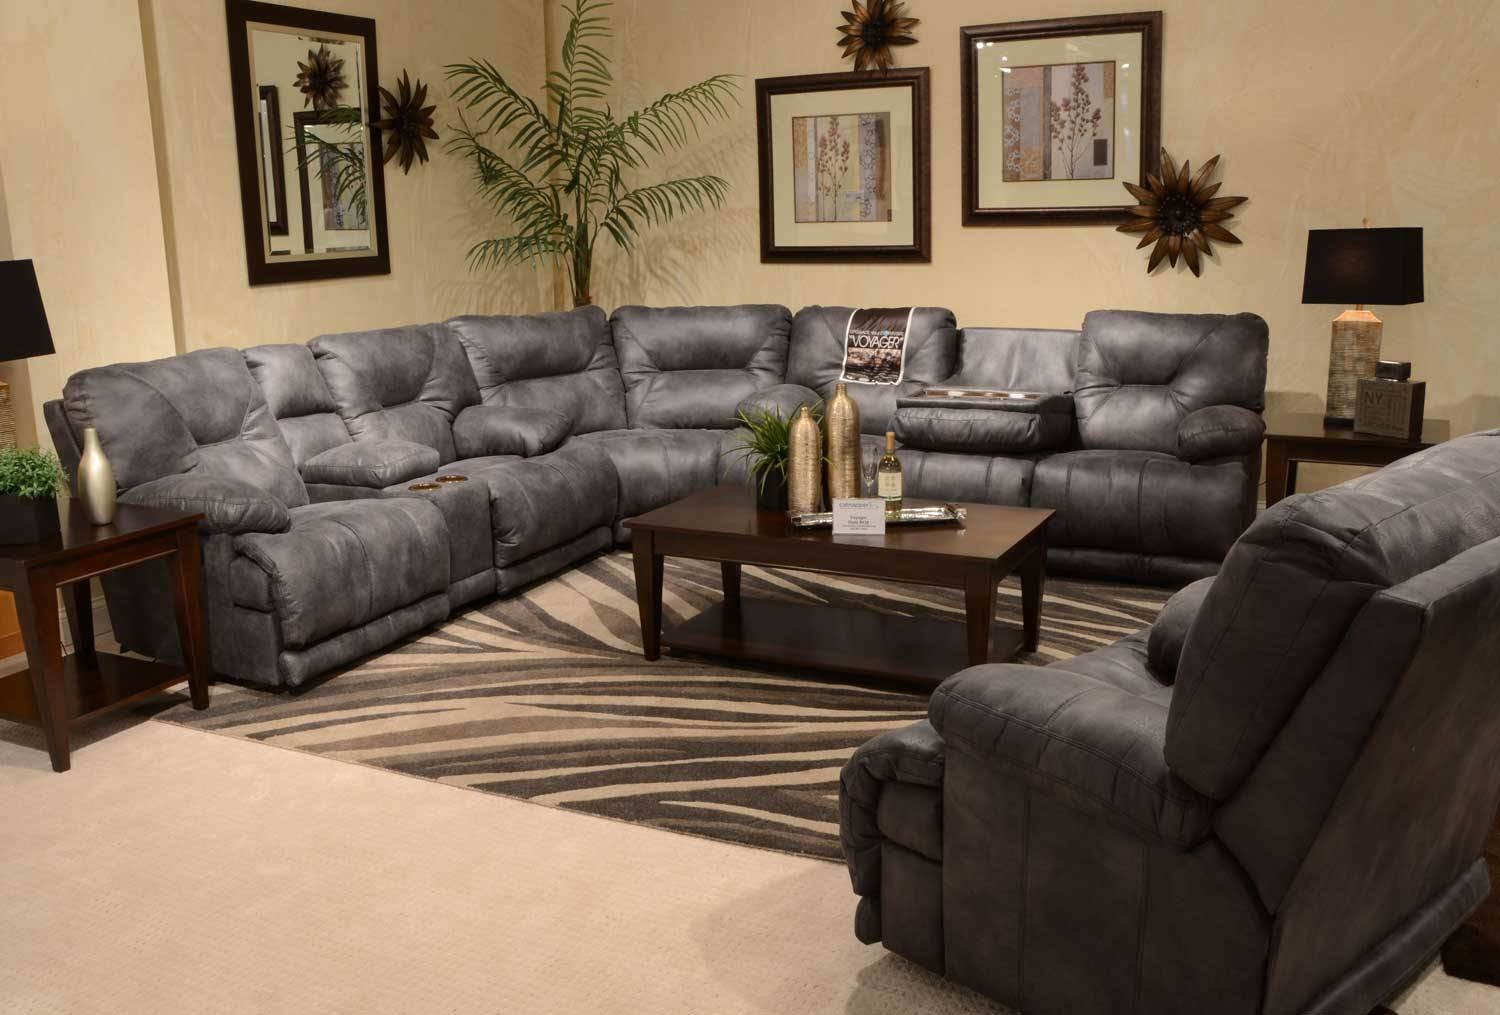 Sofas Center : Magnificent Recliningfa With Console Images Concept within Sofas With Consoles (Image 16 of 30)